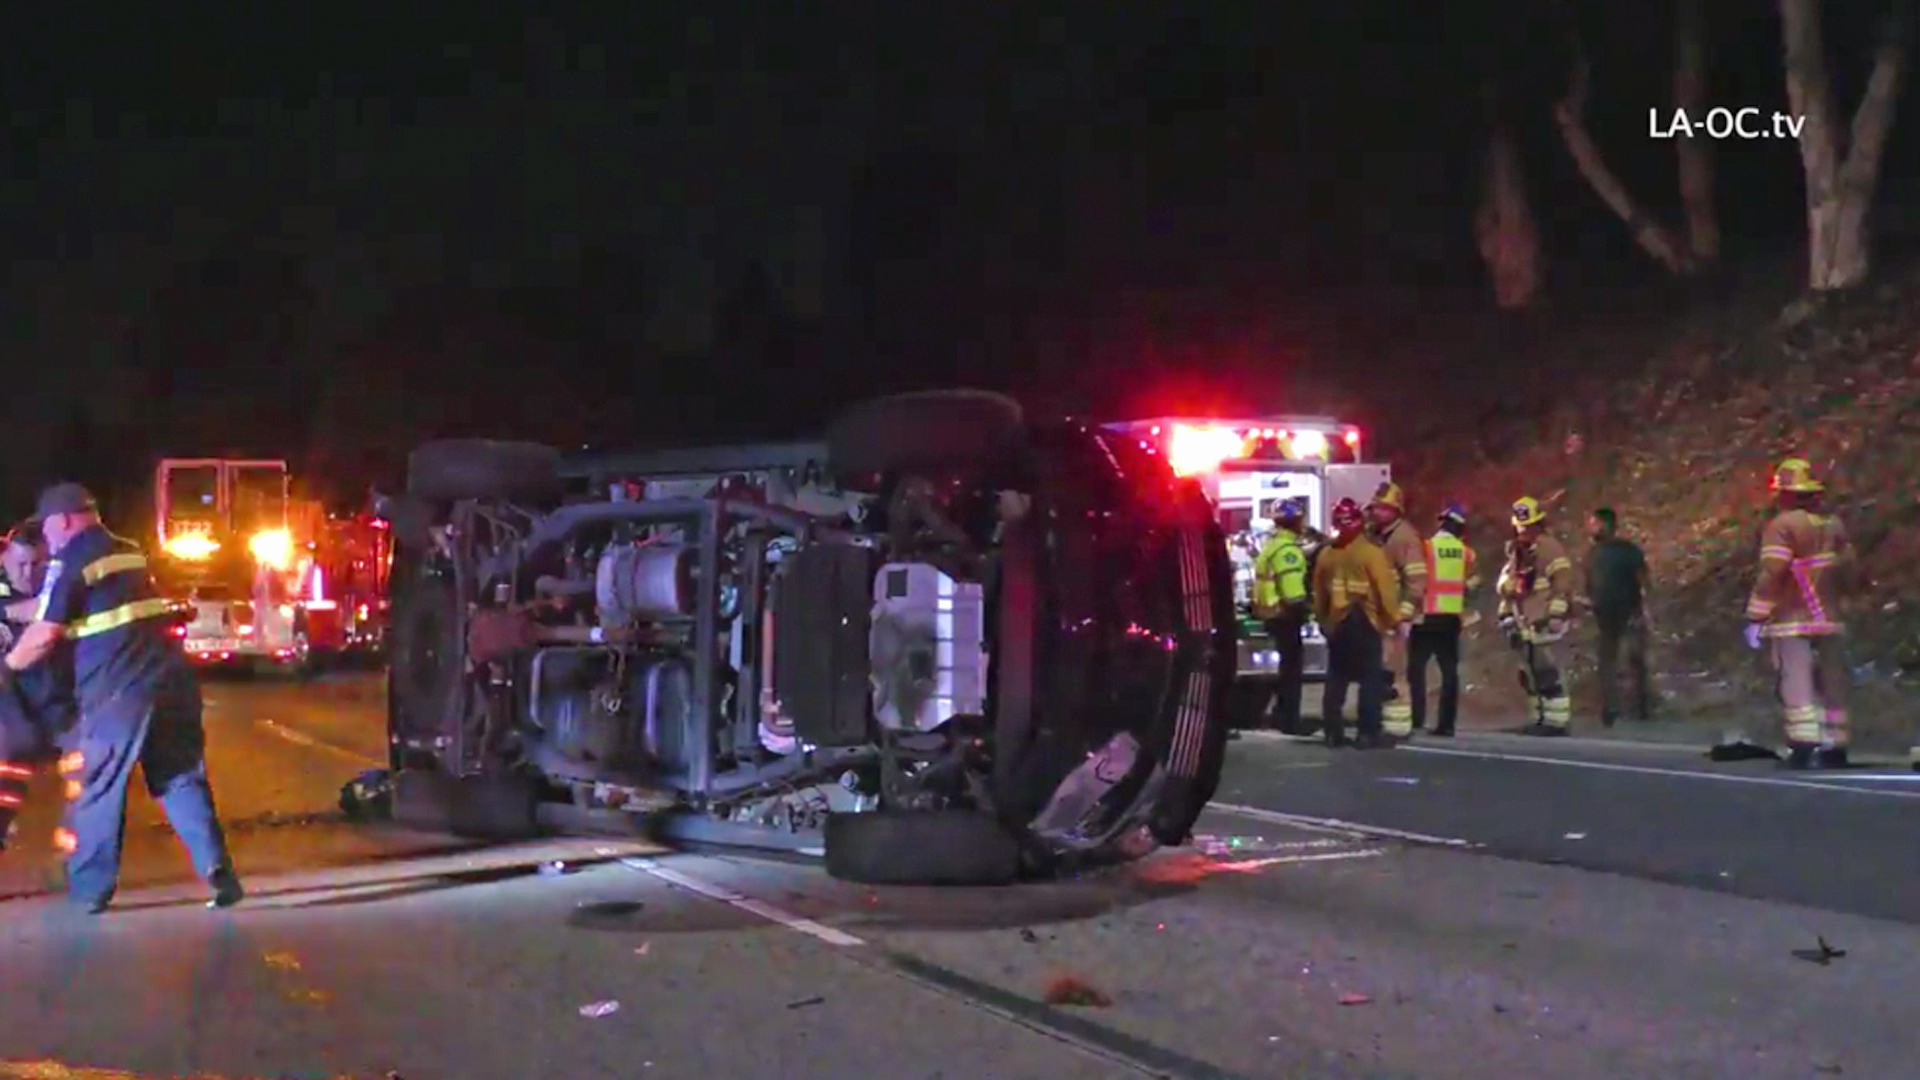 The SUV involved in a crash on the 5 Freeway in Mission Viejo is seen on April 12, 2018. (Credit: LA-OC.tv)